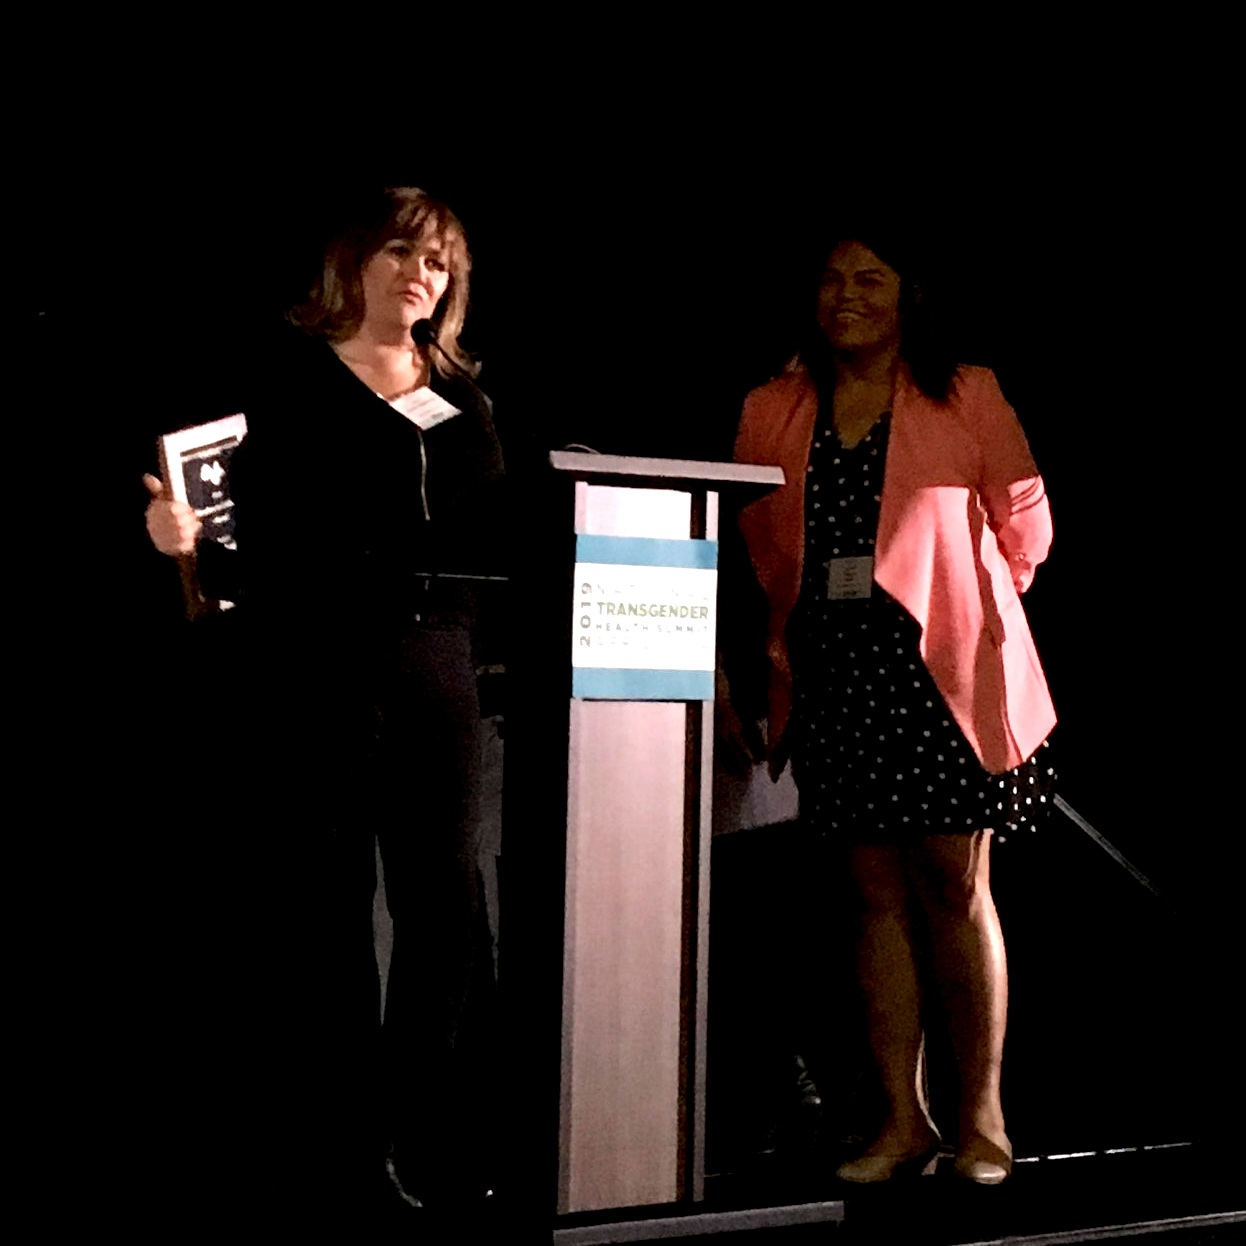 Karen Aguilar accepting her award after introduction by Jenna, member of the SF AFFIRM Community Advisory board.